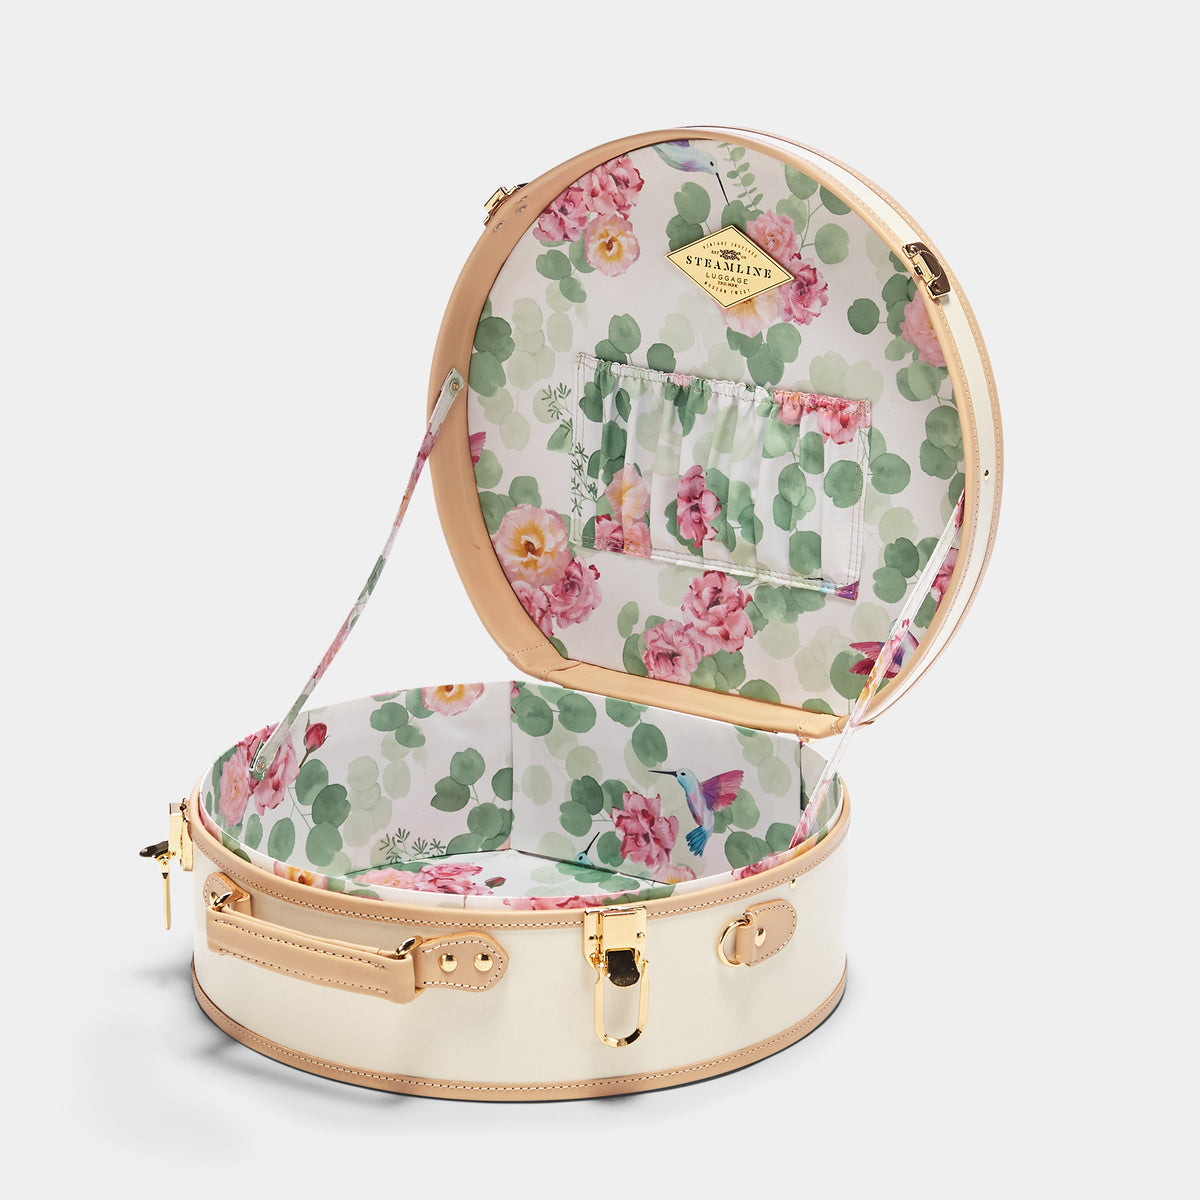 The Sweetheart - Large Hatbox